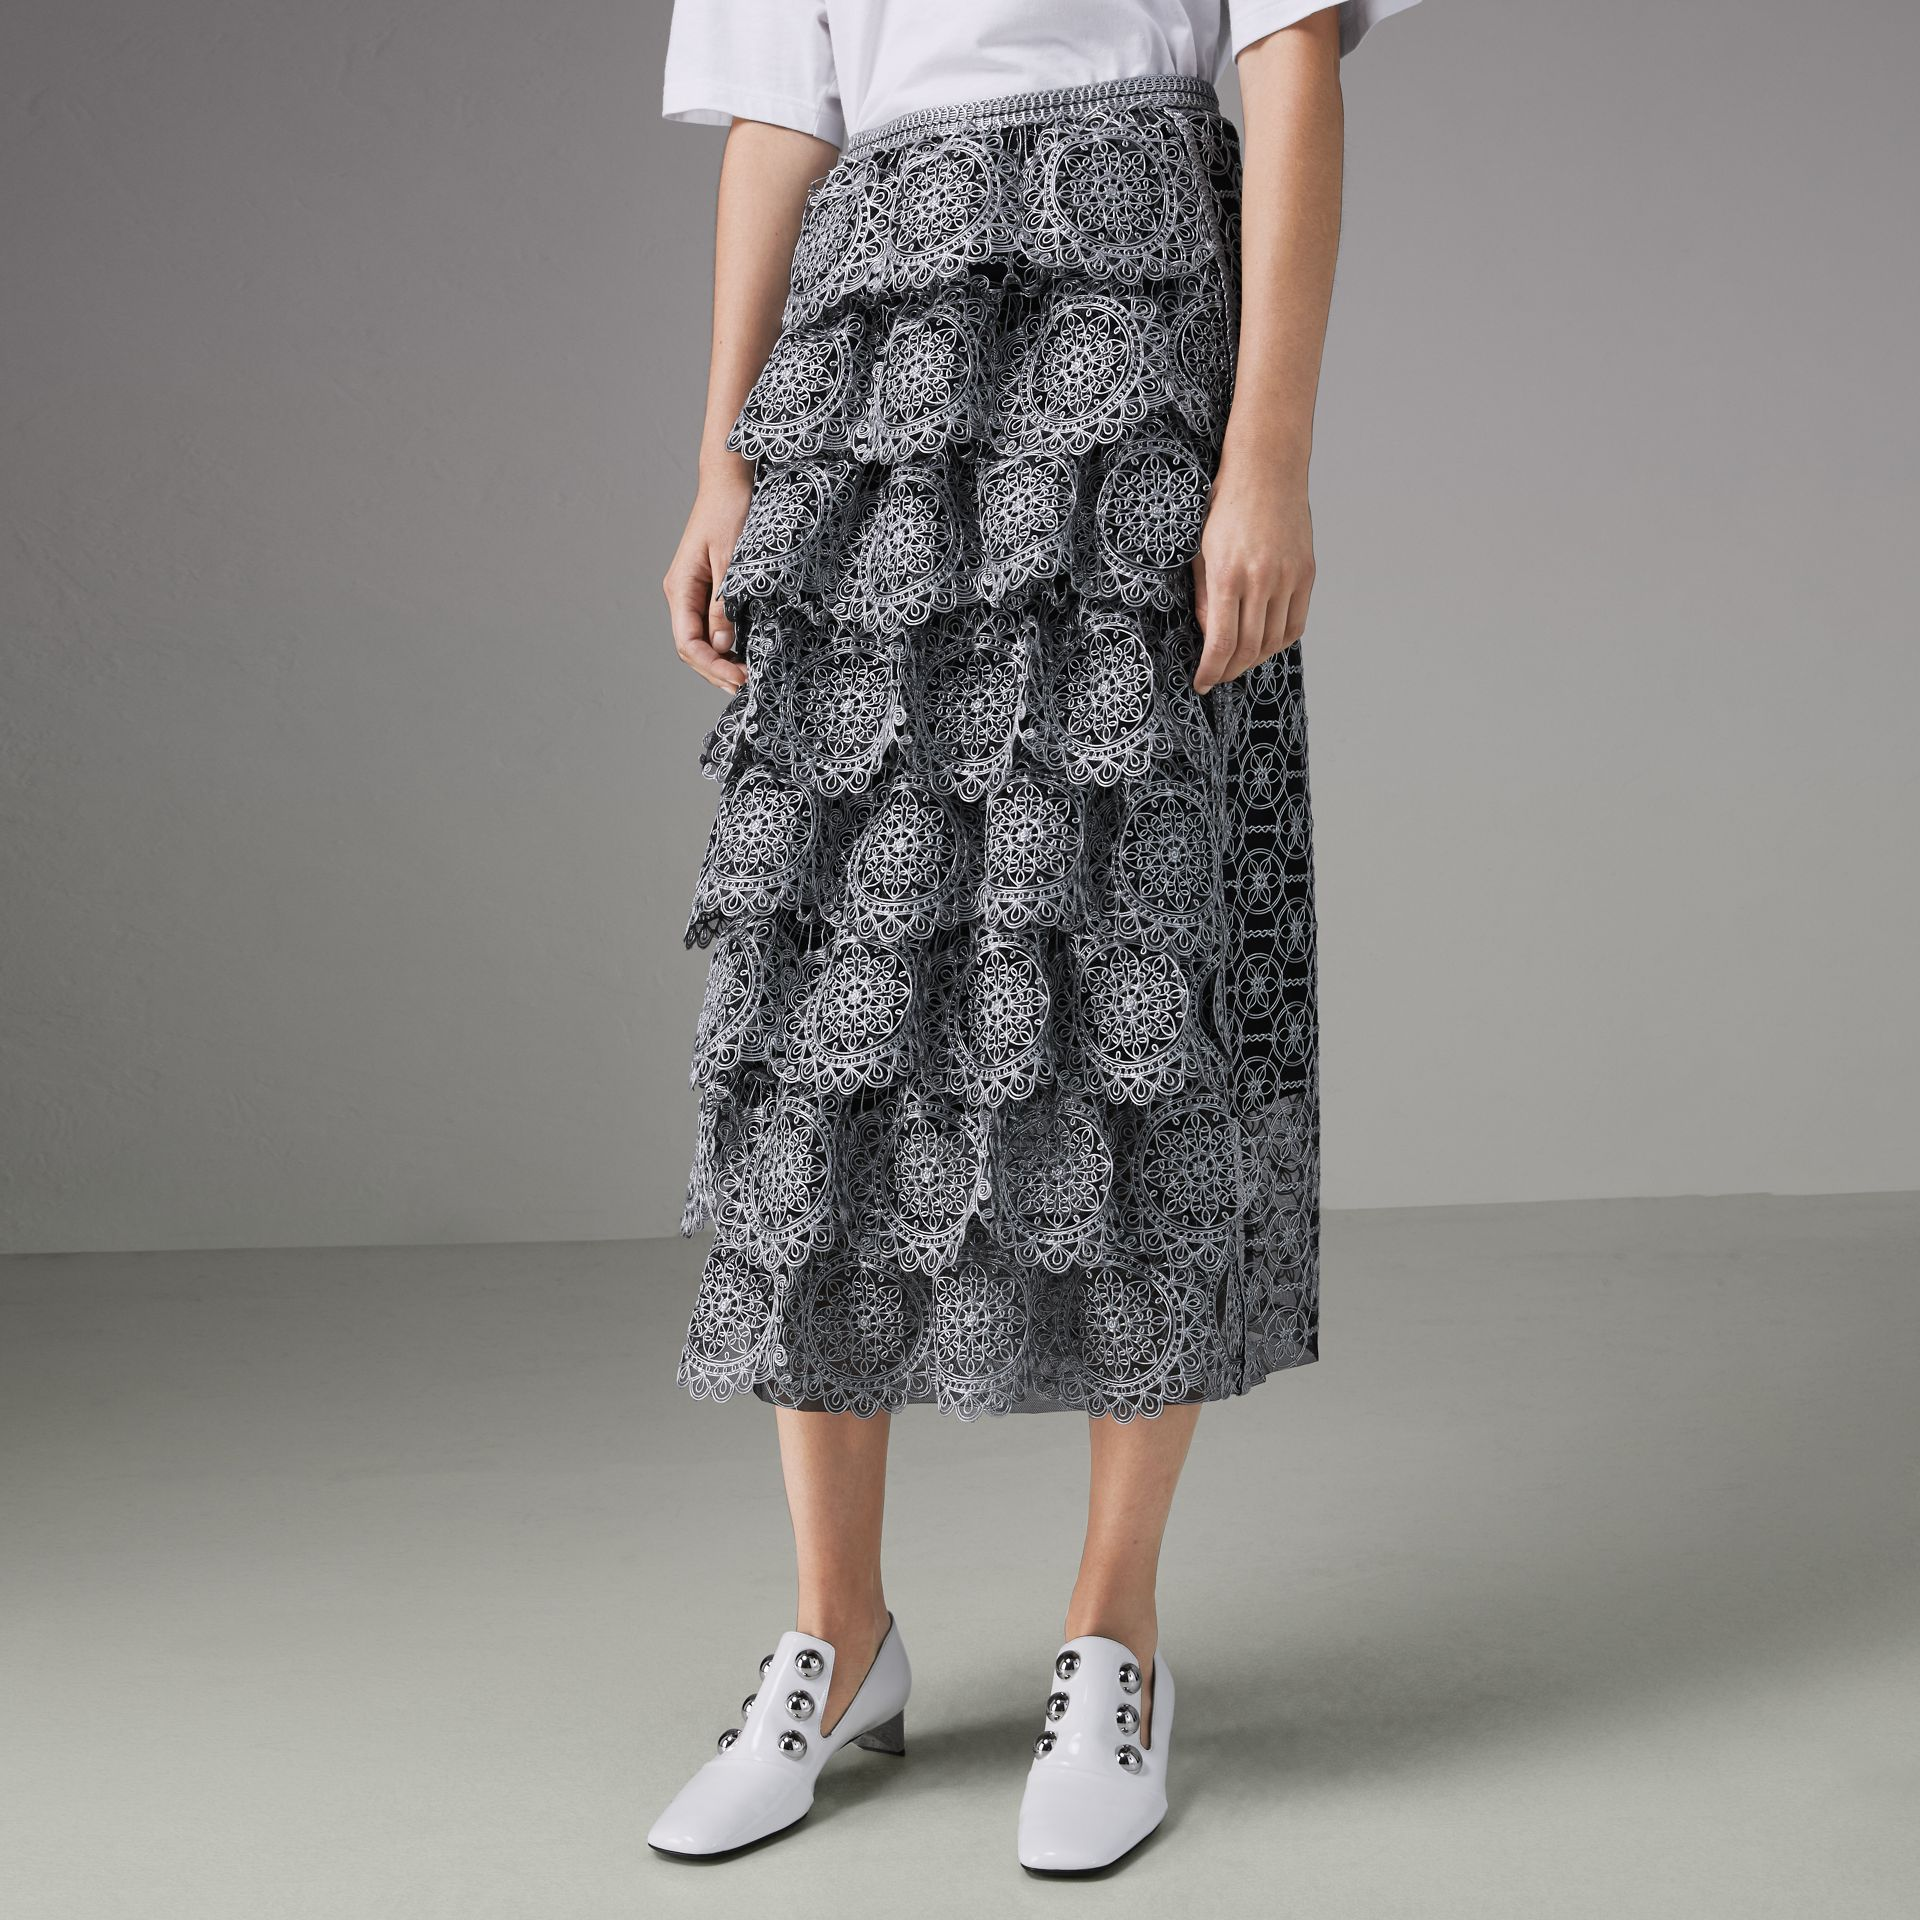 Tiered Silicone Lace Skirt in Silver - Women | Burberry United Kingdom - gallery image 4